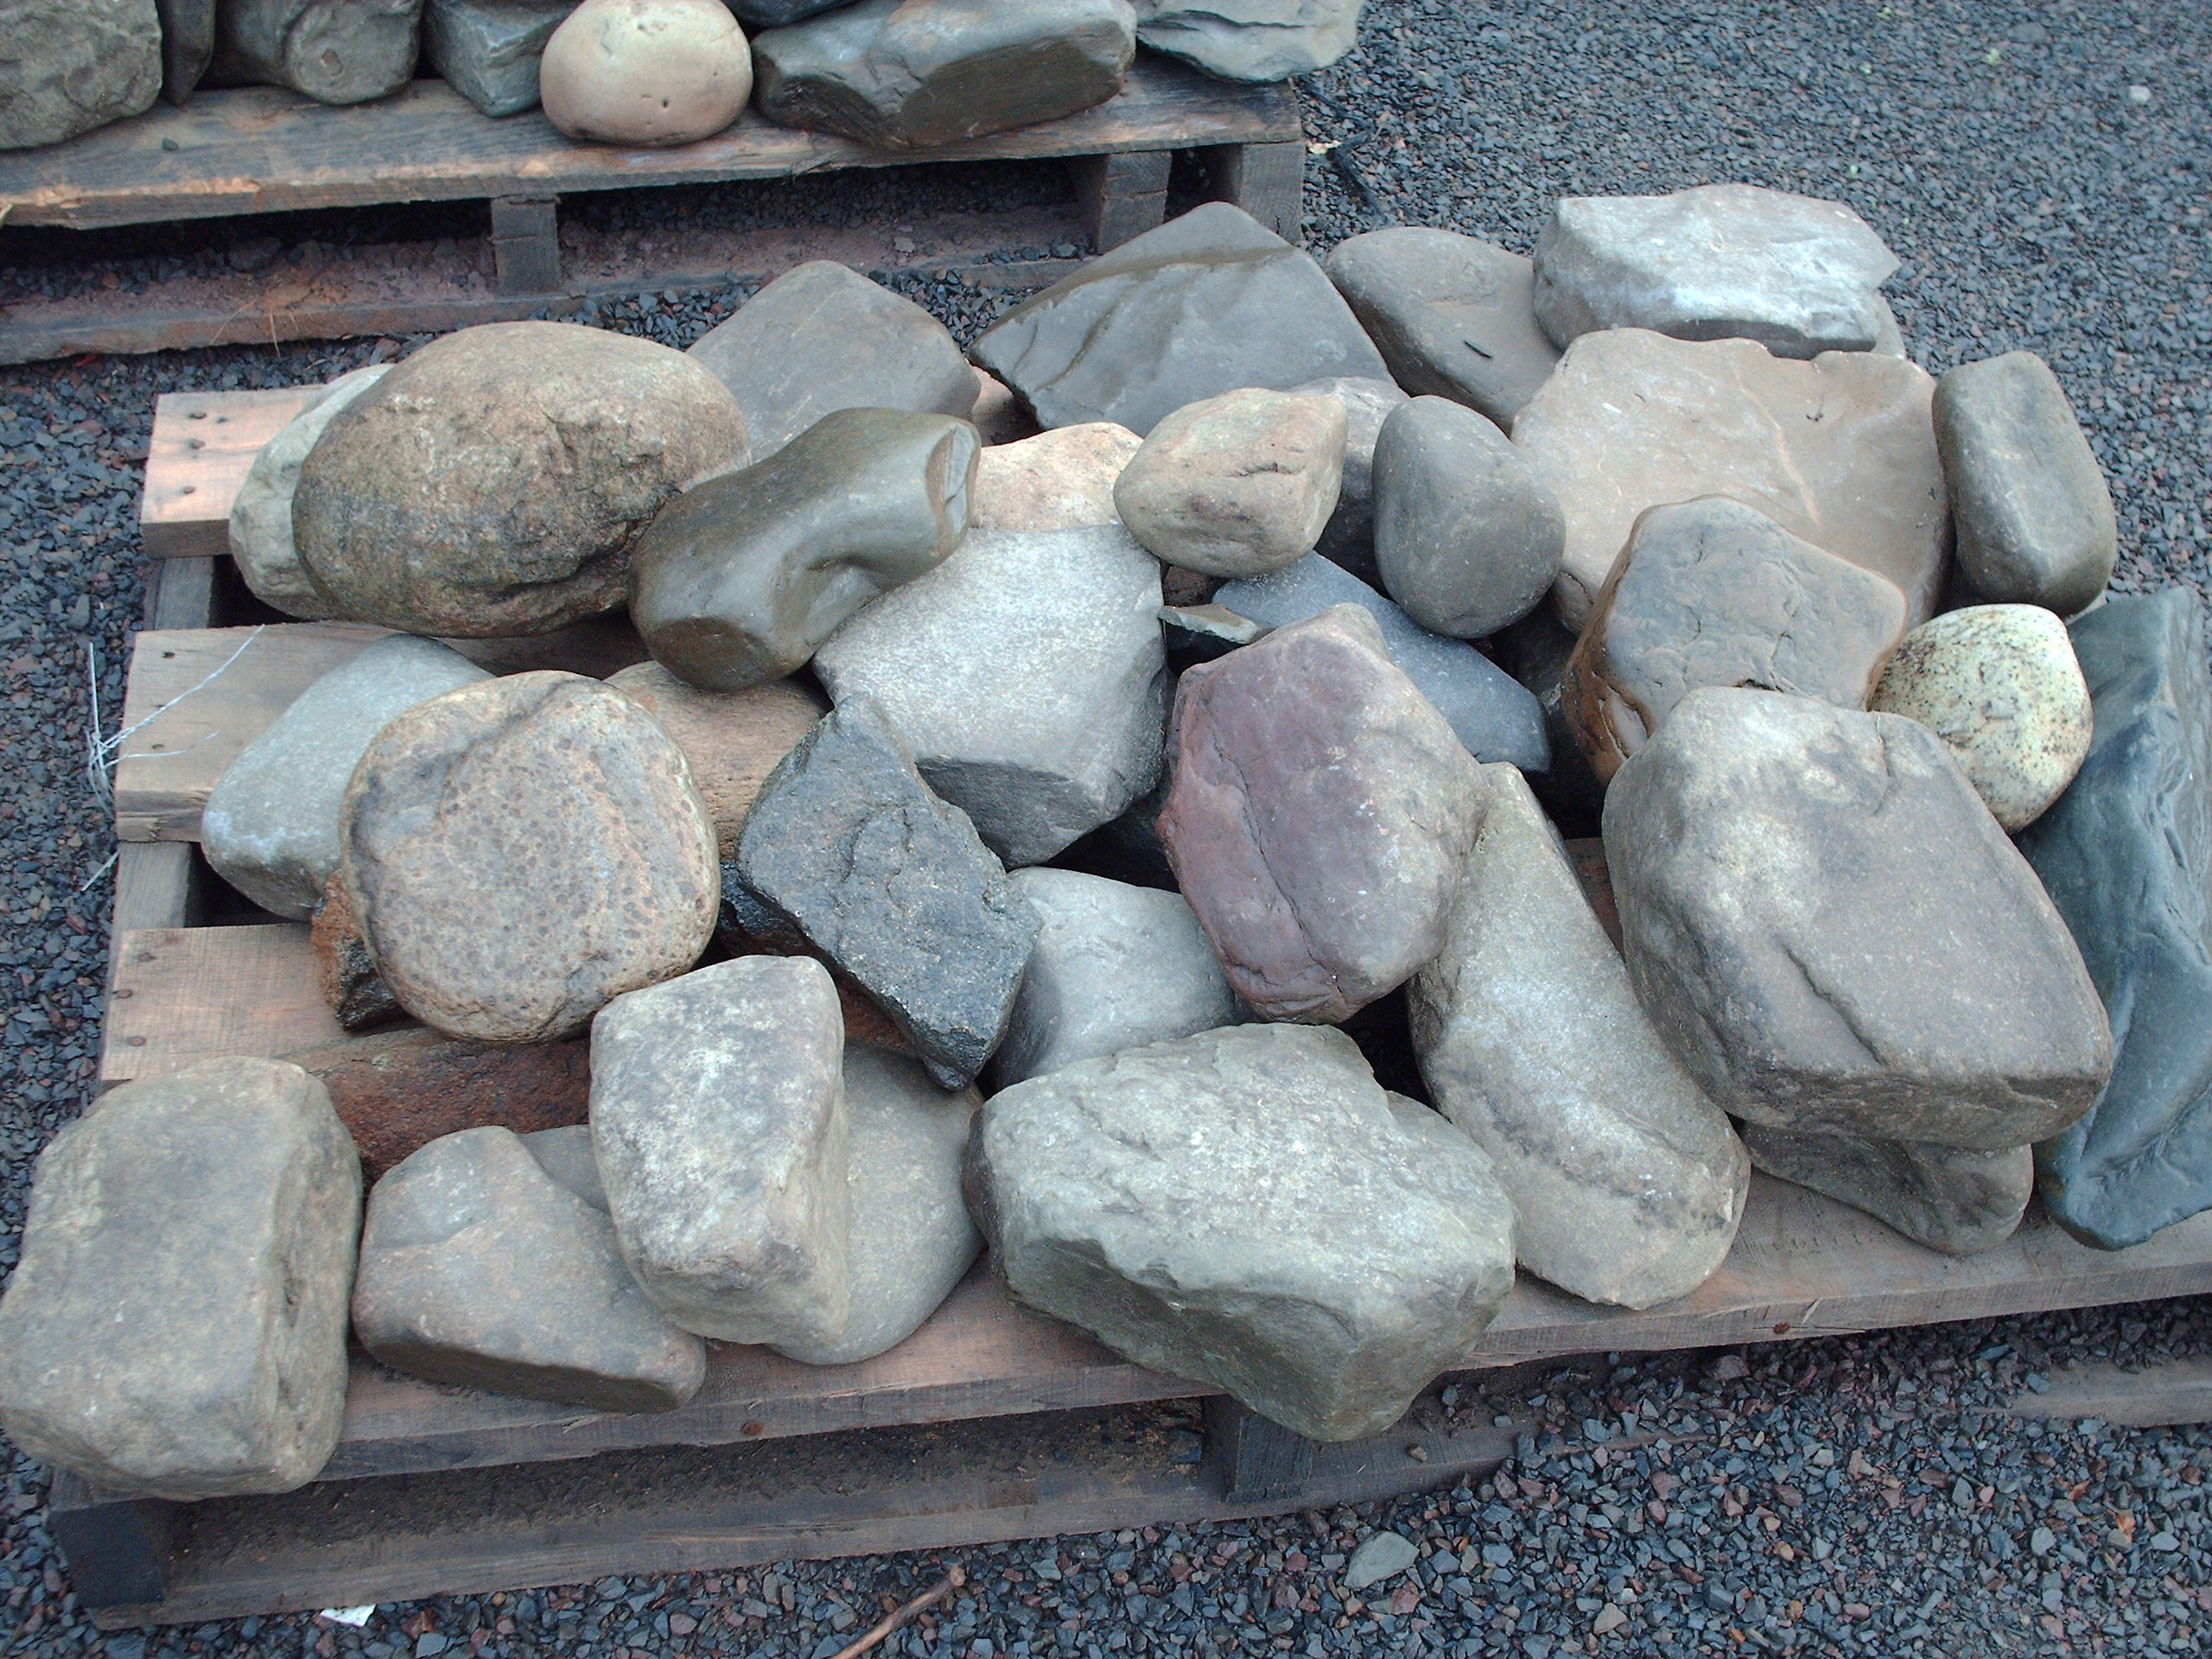 Landscaping rocks stones on pallets buy this pallet of creek stones workwithnaturefo